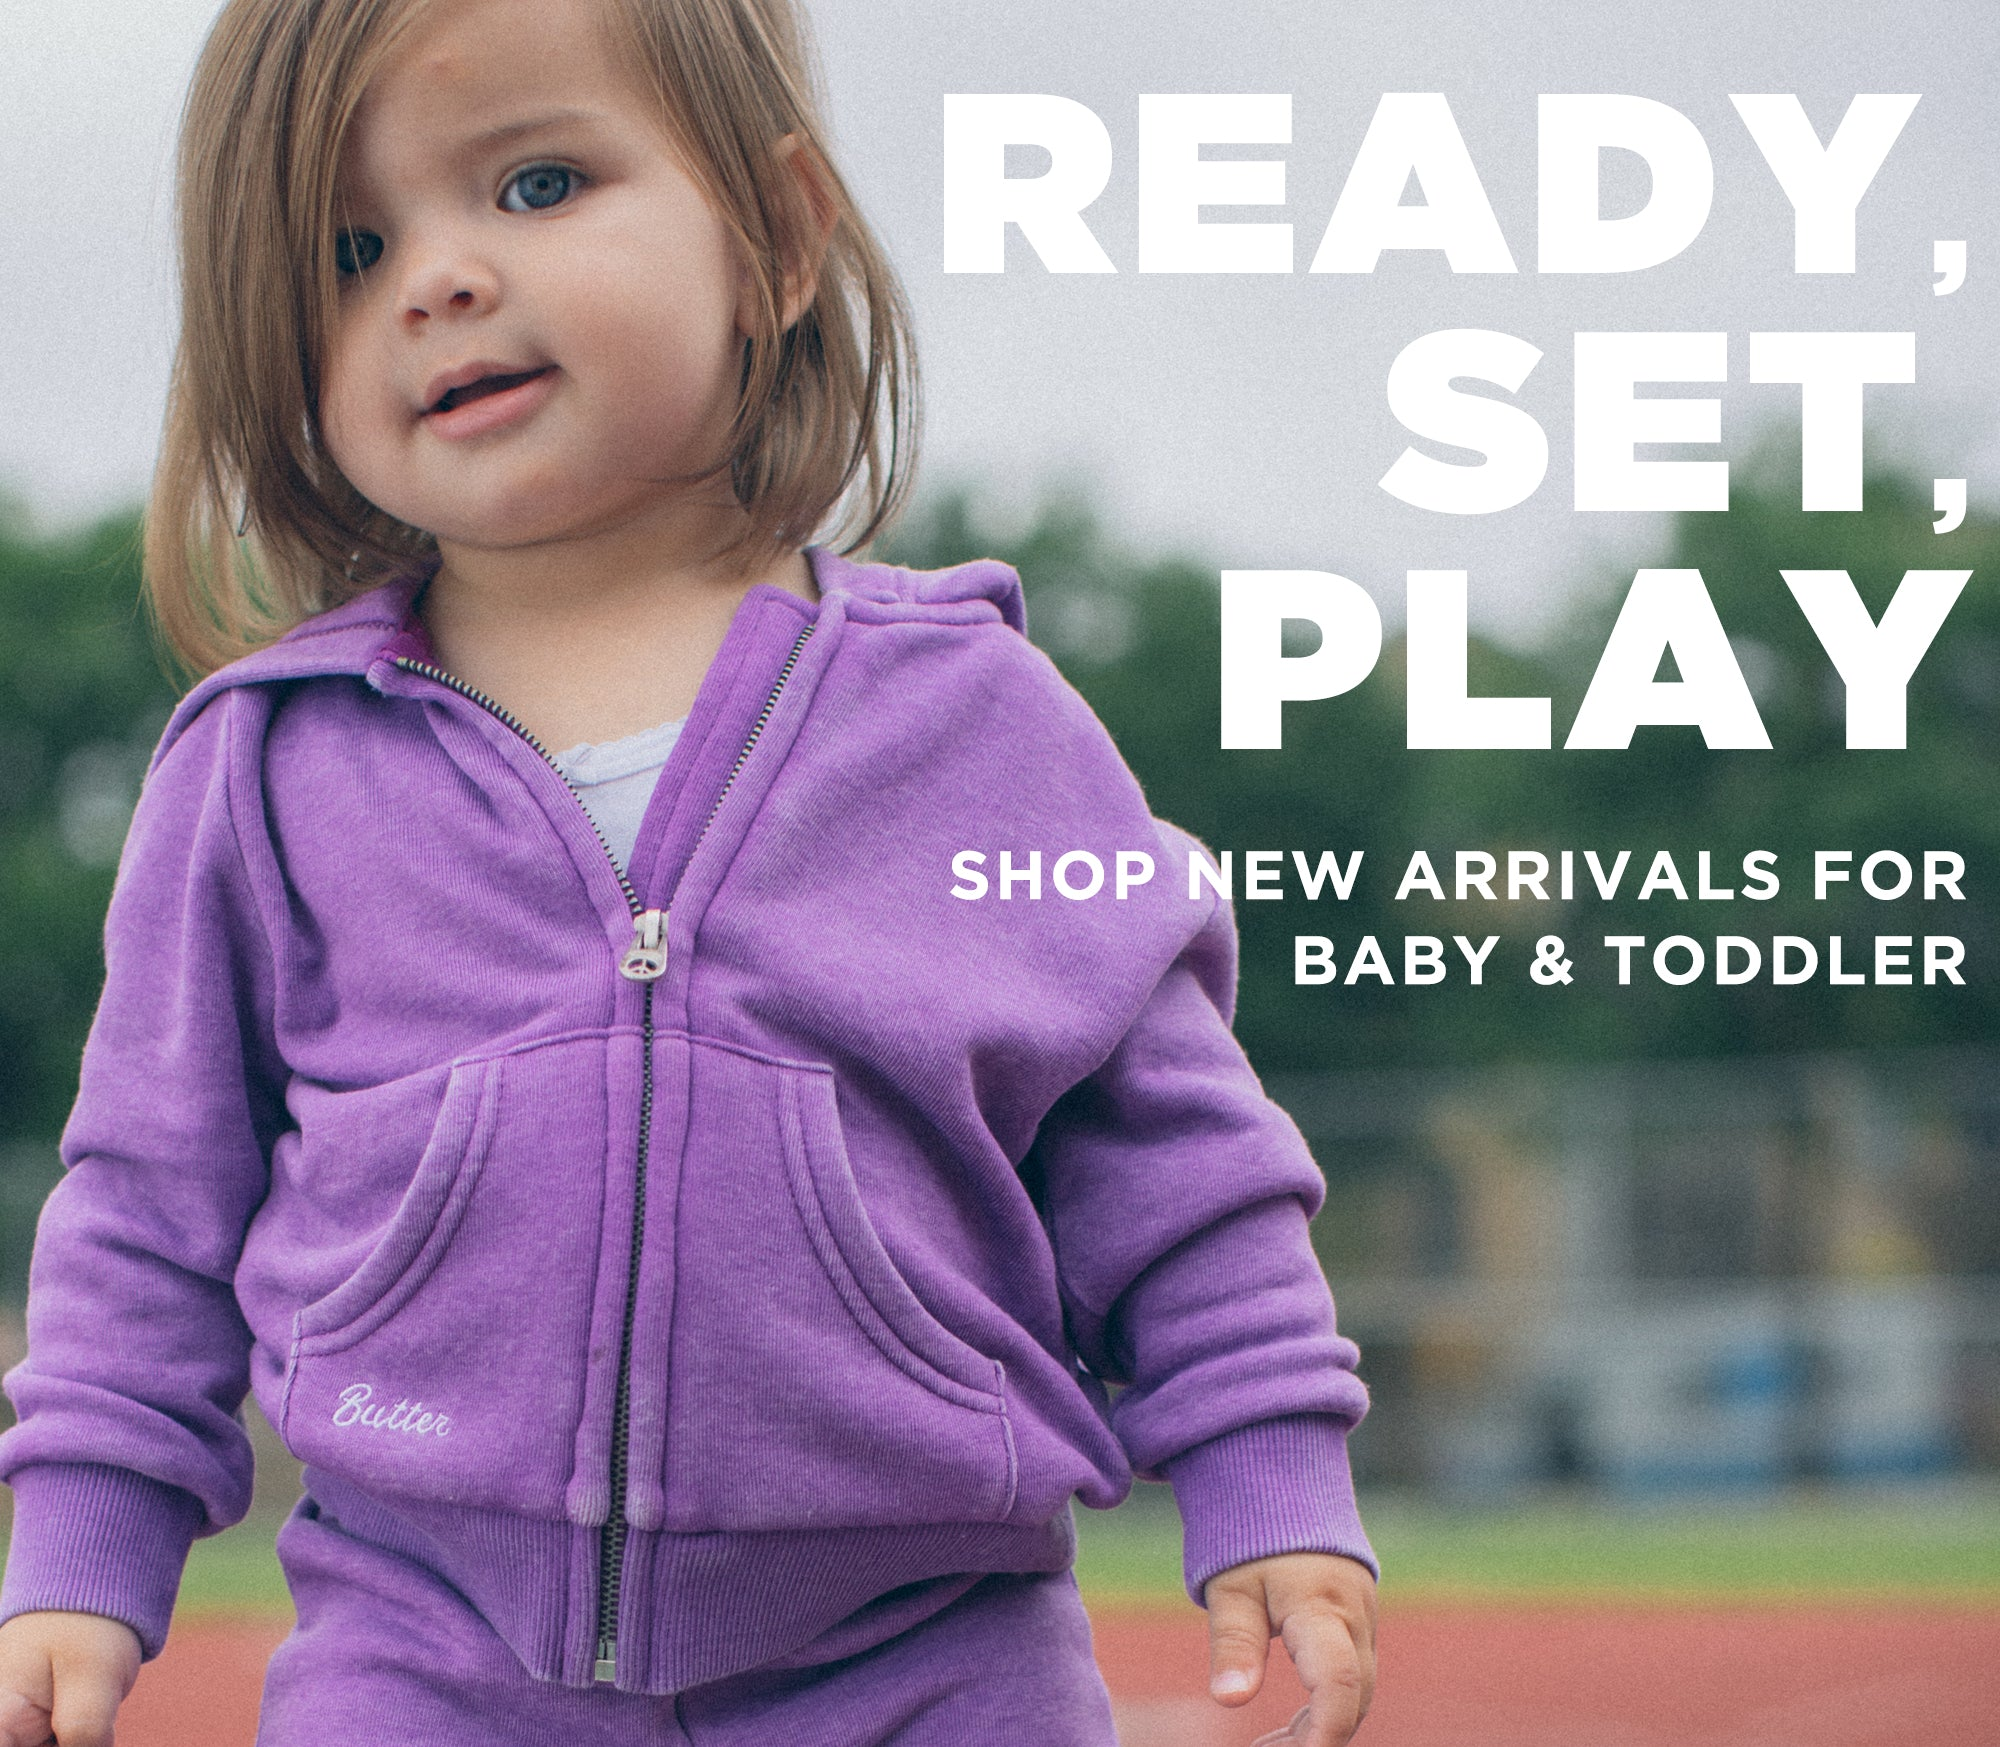 Ready, Set, Play - Shop New Arrivals for Baby & Toddler